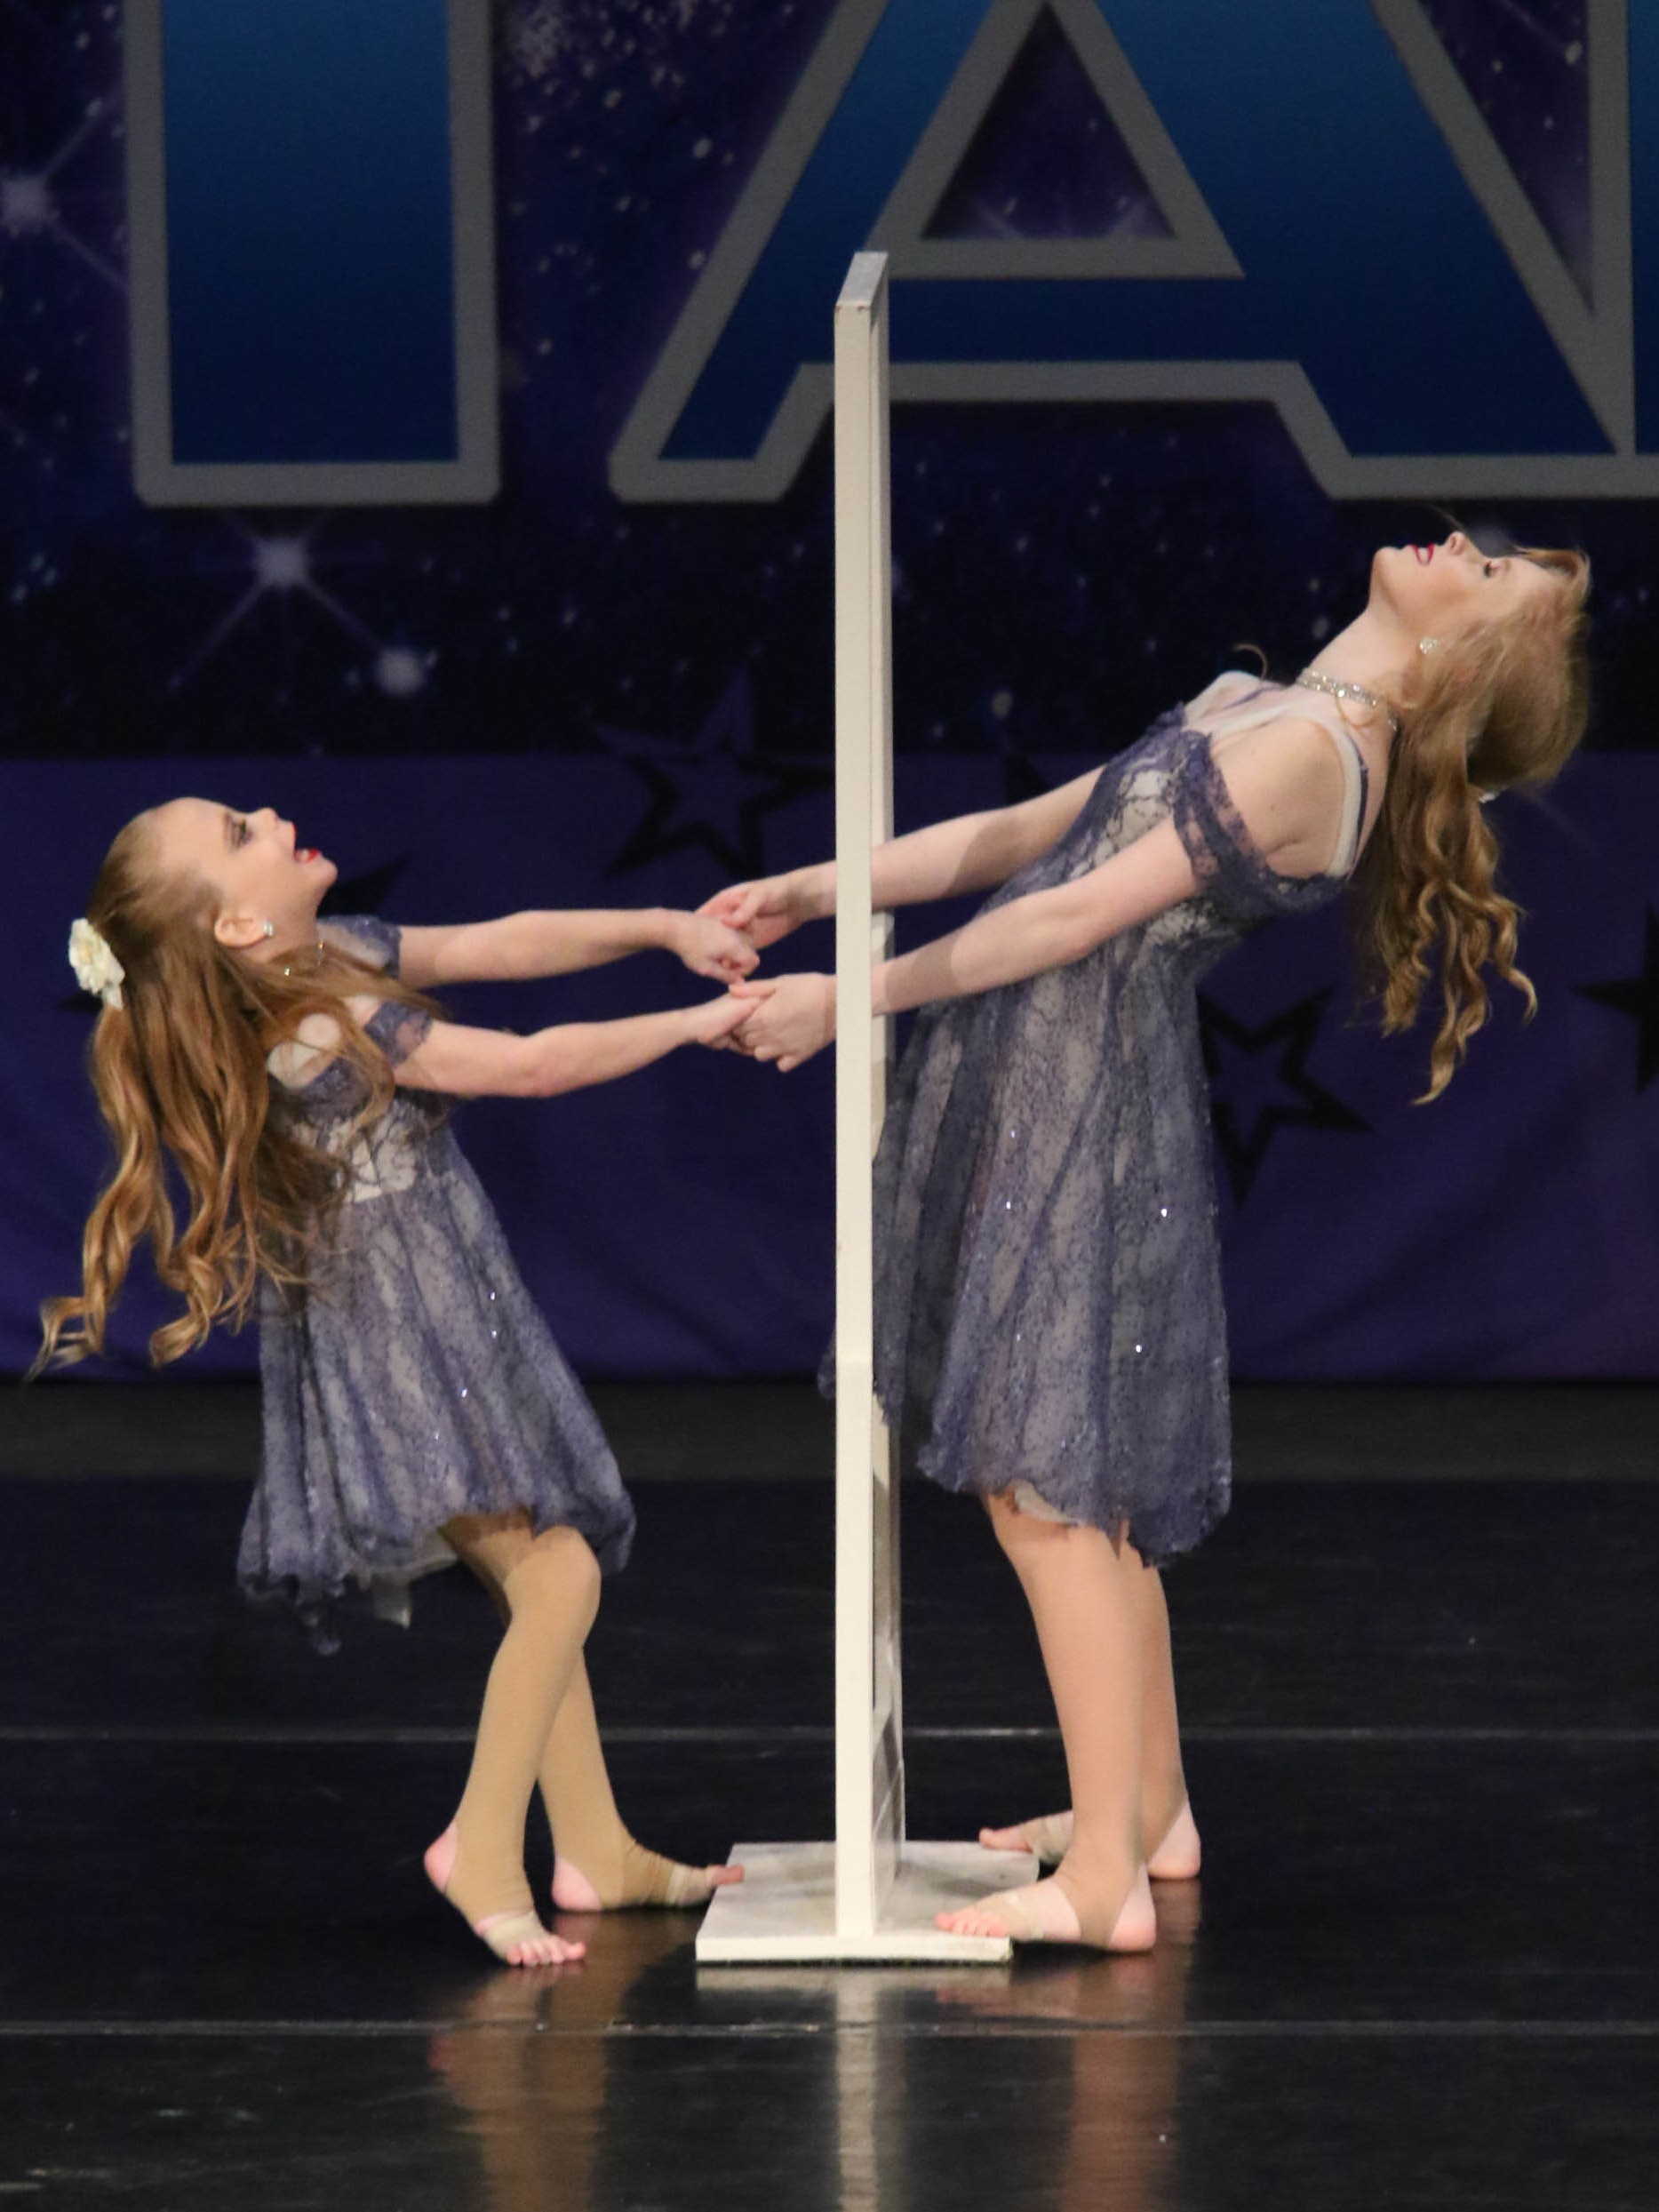 """During the 2018-2019 competition season, Katherine performed a duet with Heather Jaynes to """"Reflection"""" by Christina Aguilera. The meaning of the dance is that Katherine is looking at her reflection, which is actually Heather. This song was so sentimental to Katherine and her family because this is exactly what Katherine sees when she dances: no challenges or differences. The girls competed in the Teen Category and won Top 10 finishes including a first overall and special judges award."""